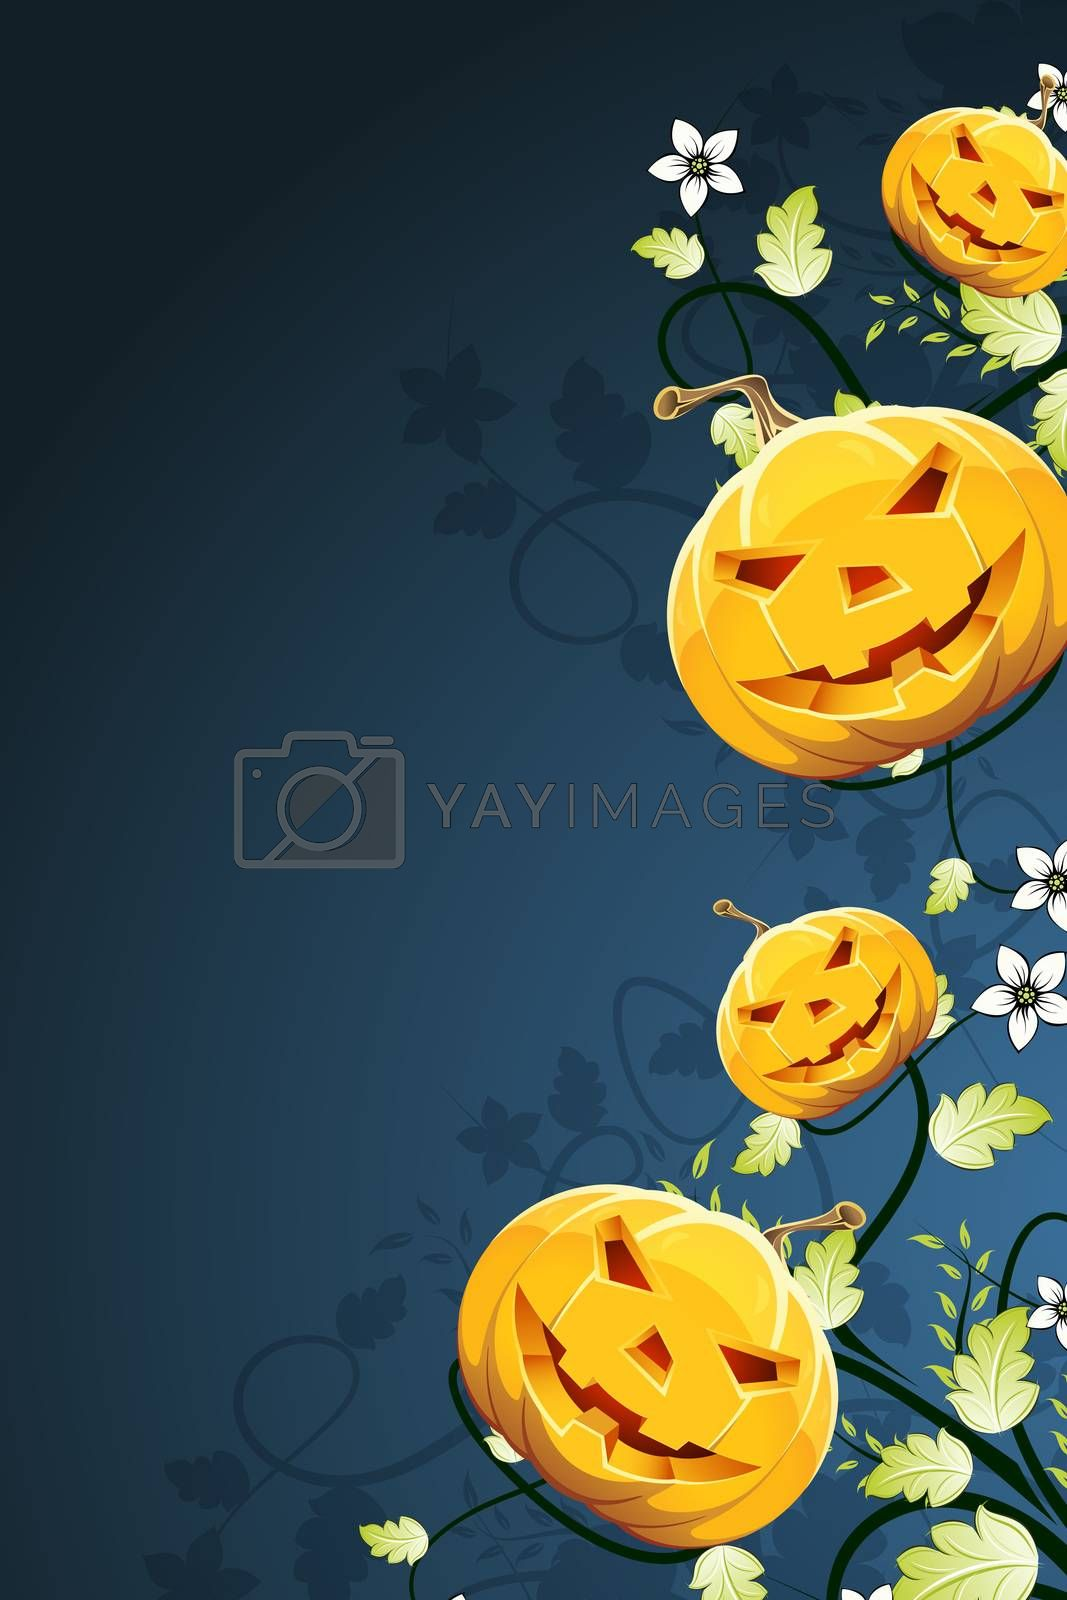 Halloween Pumpkins on Abstract Background with Flowers